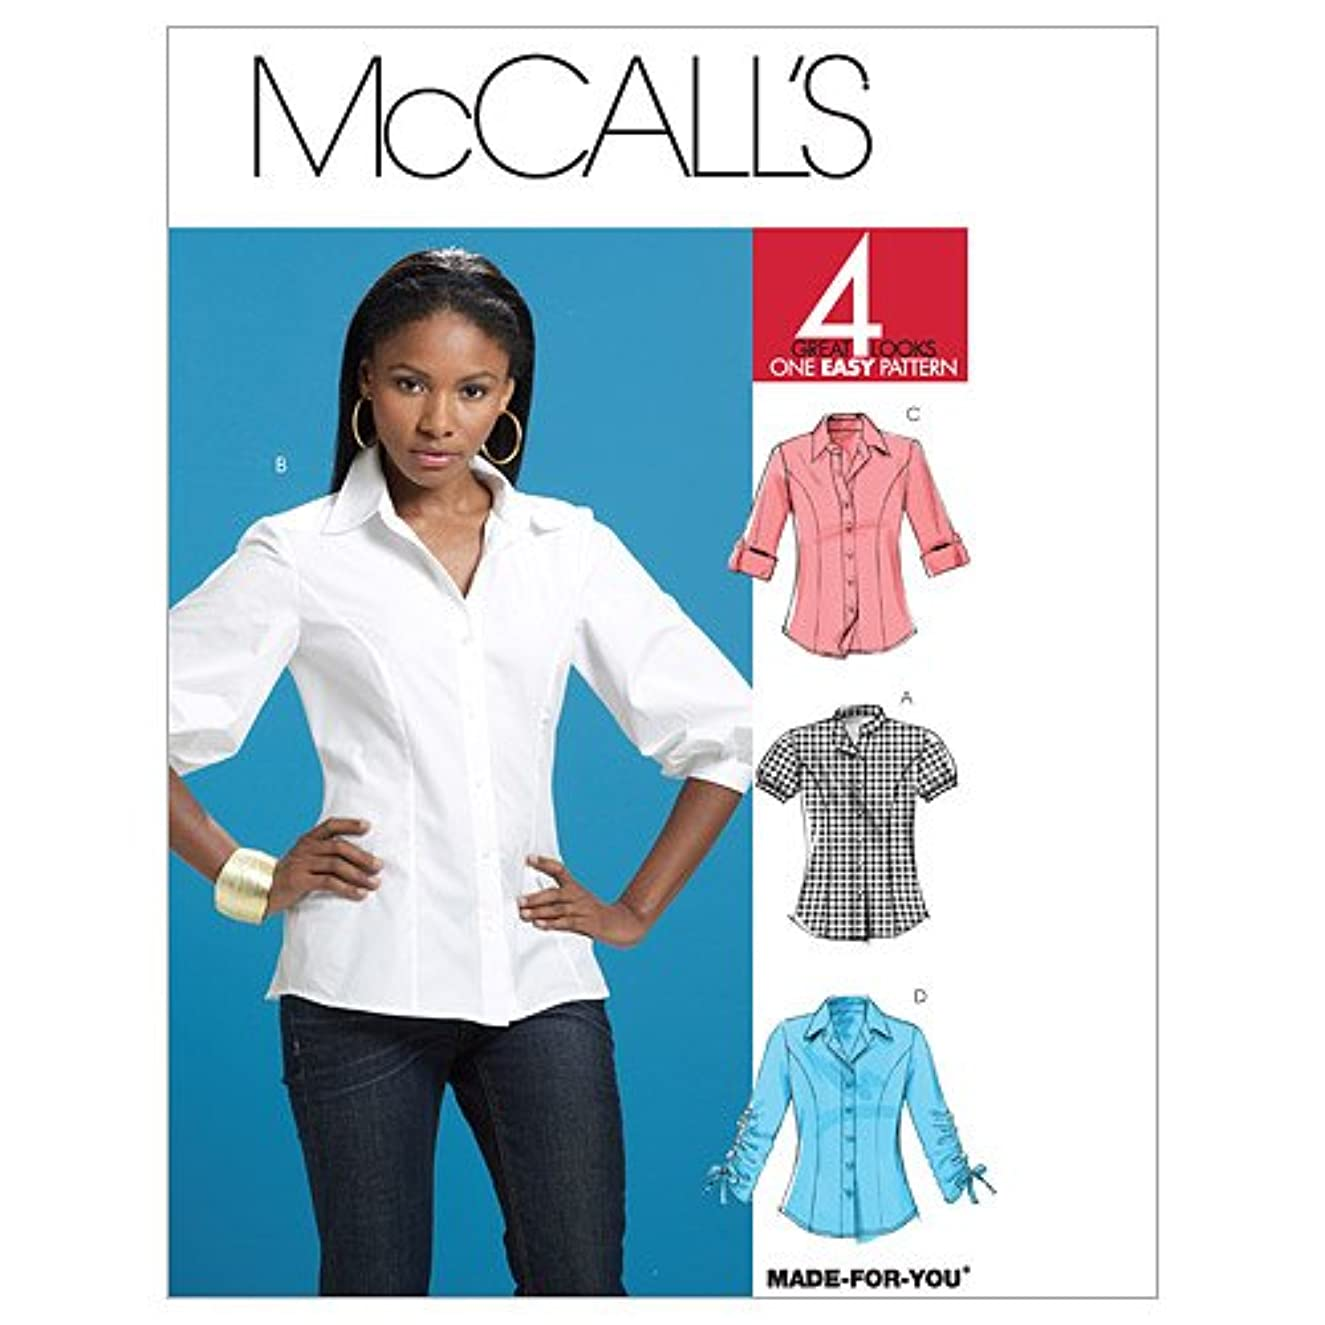 McCalls 4 Great Looks Made for You Pattern 6035 Misses Button Front Shirts Size 14-16-18-20-22